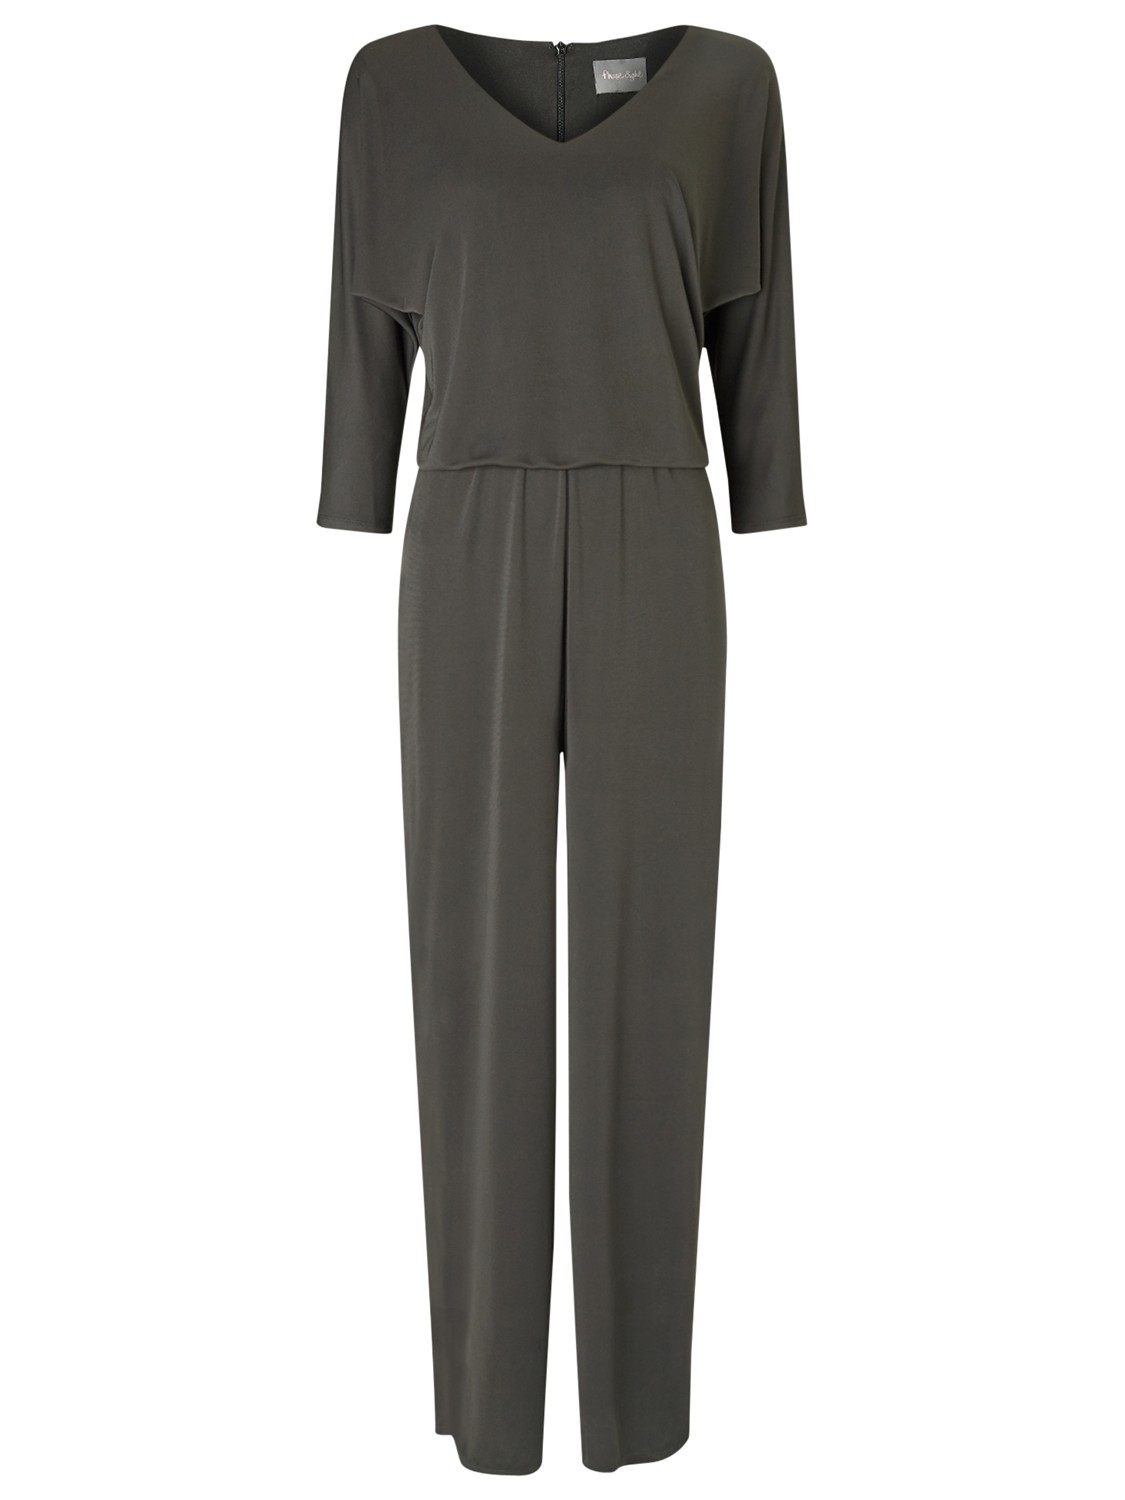 29a49a97ffe Phase Eight Cindy Batwing Jumpsuit in Green - Lyst